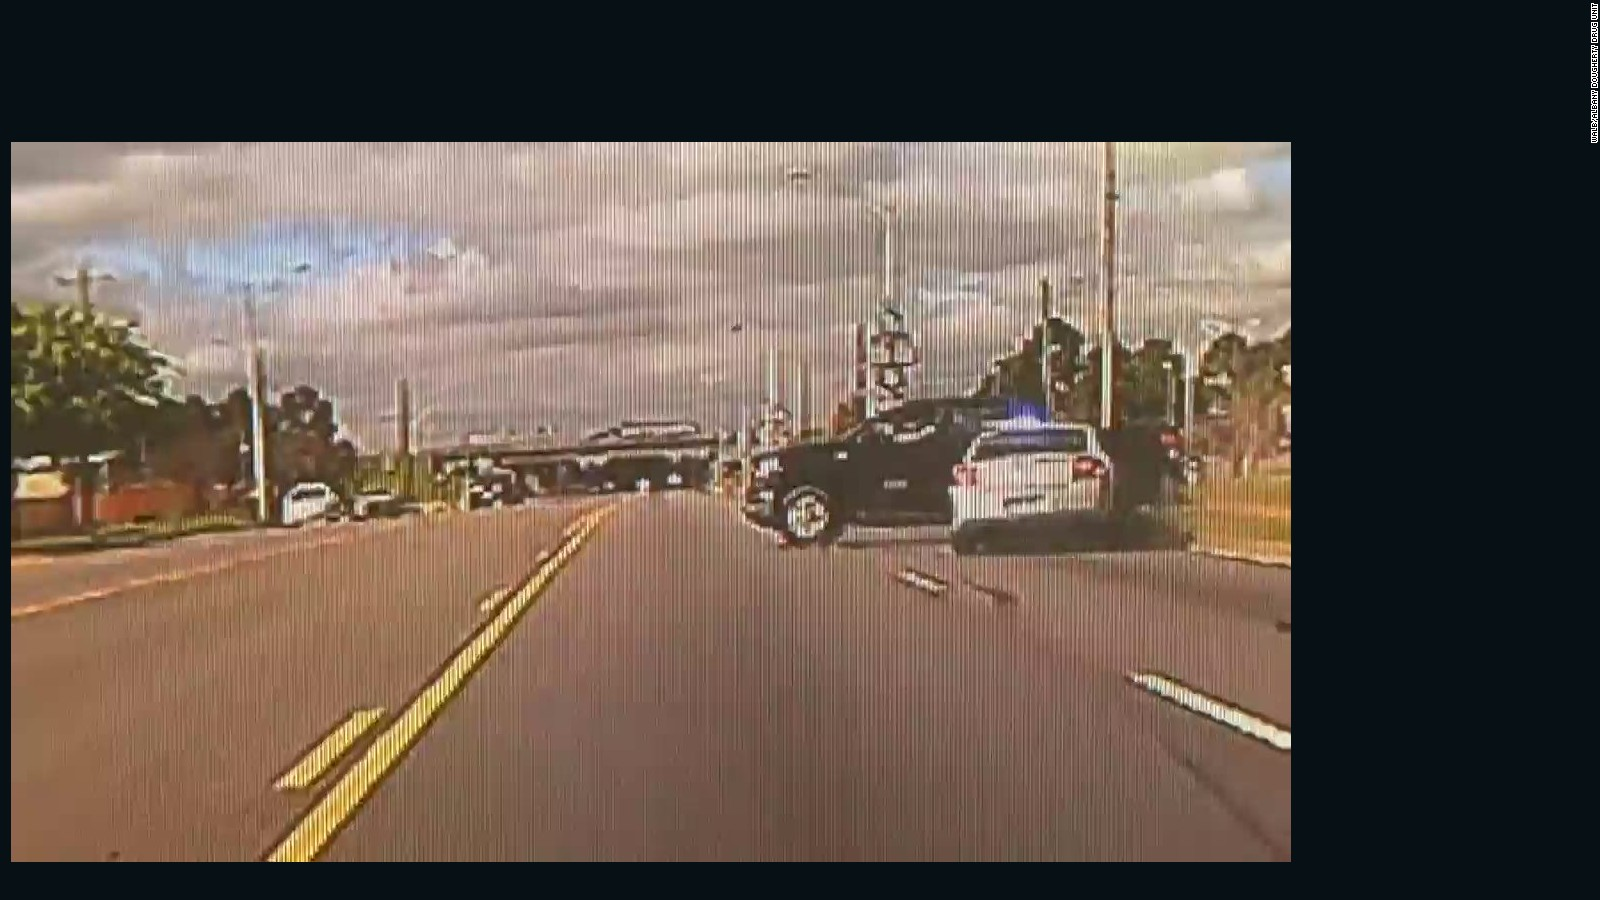 Dash cam video captures high-speed police chase - CNN Video